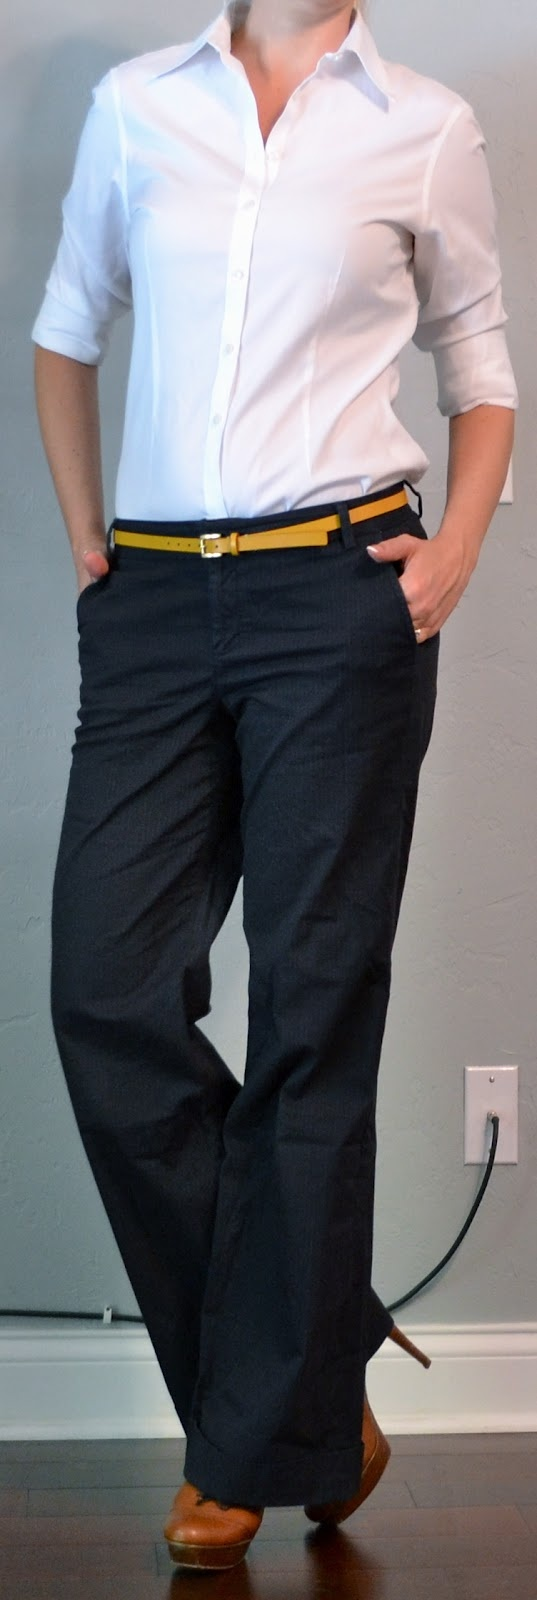 Outfit Posts: outfit post: white button down, yellow belt, navy pants